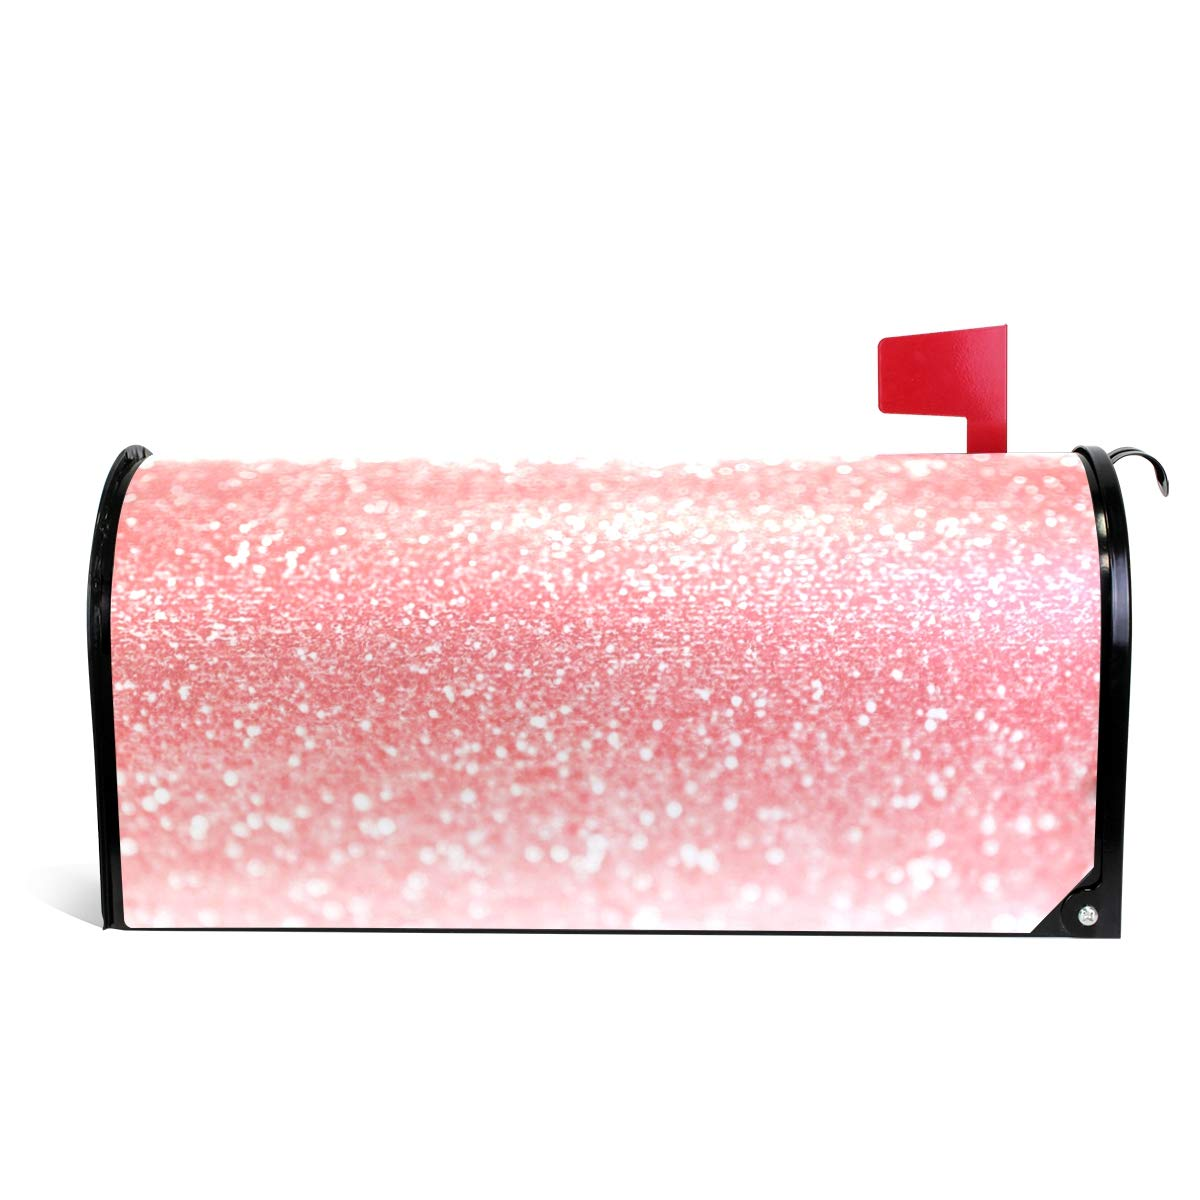 WOOR Pink Glitter Sparkle Magnetic Mailbox Cover Oversized-20.8x 25.5